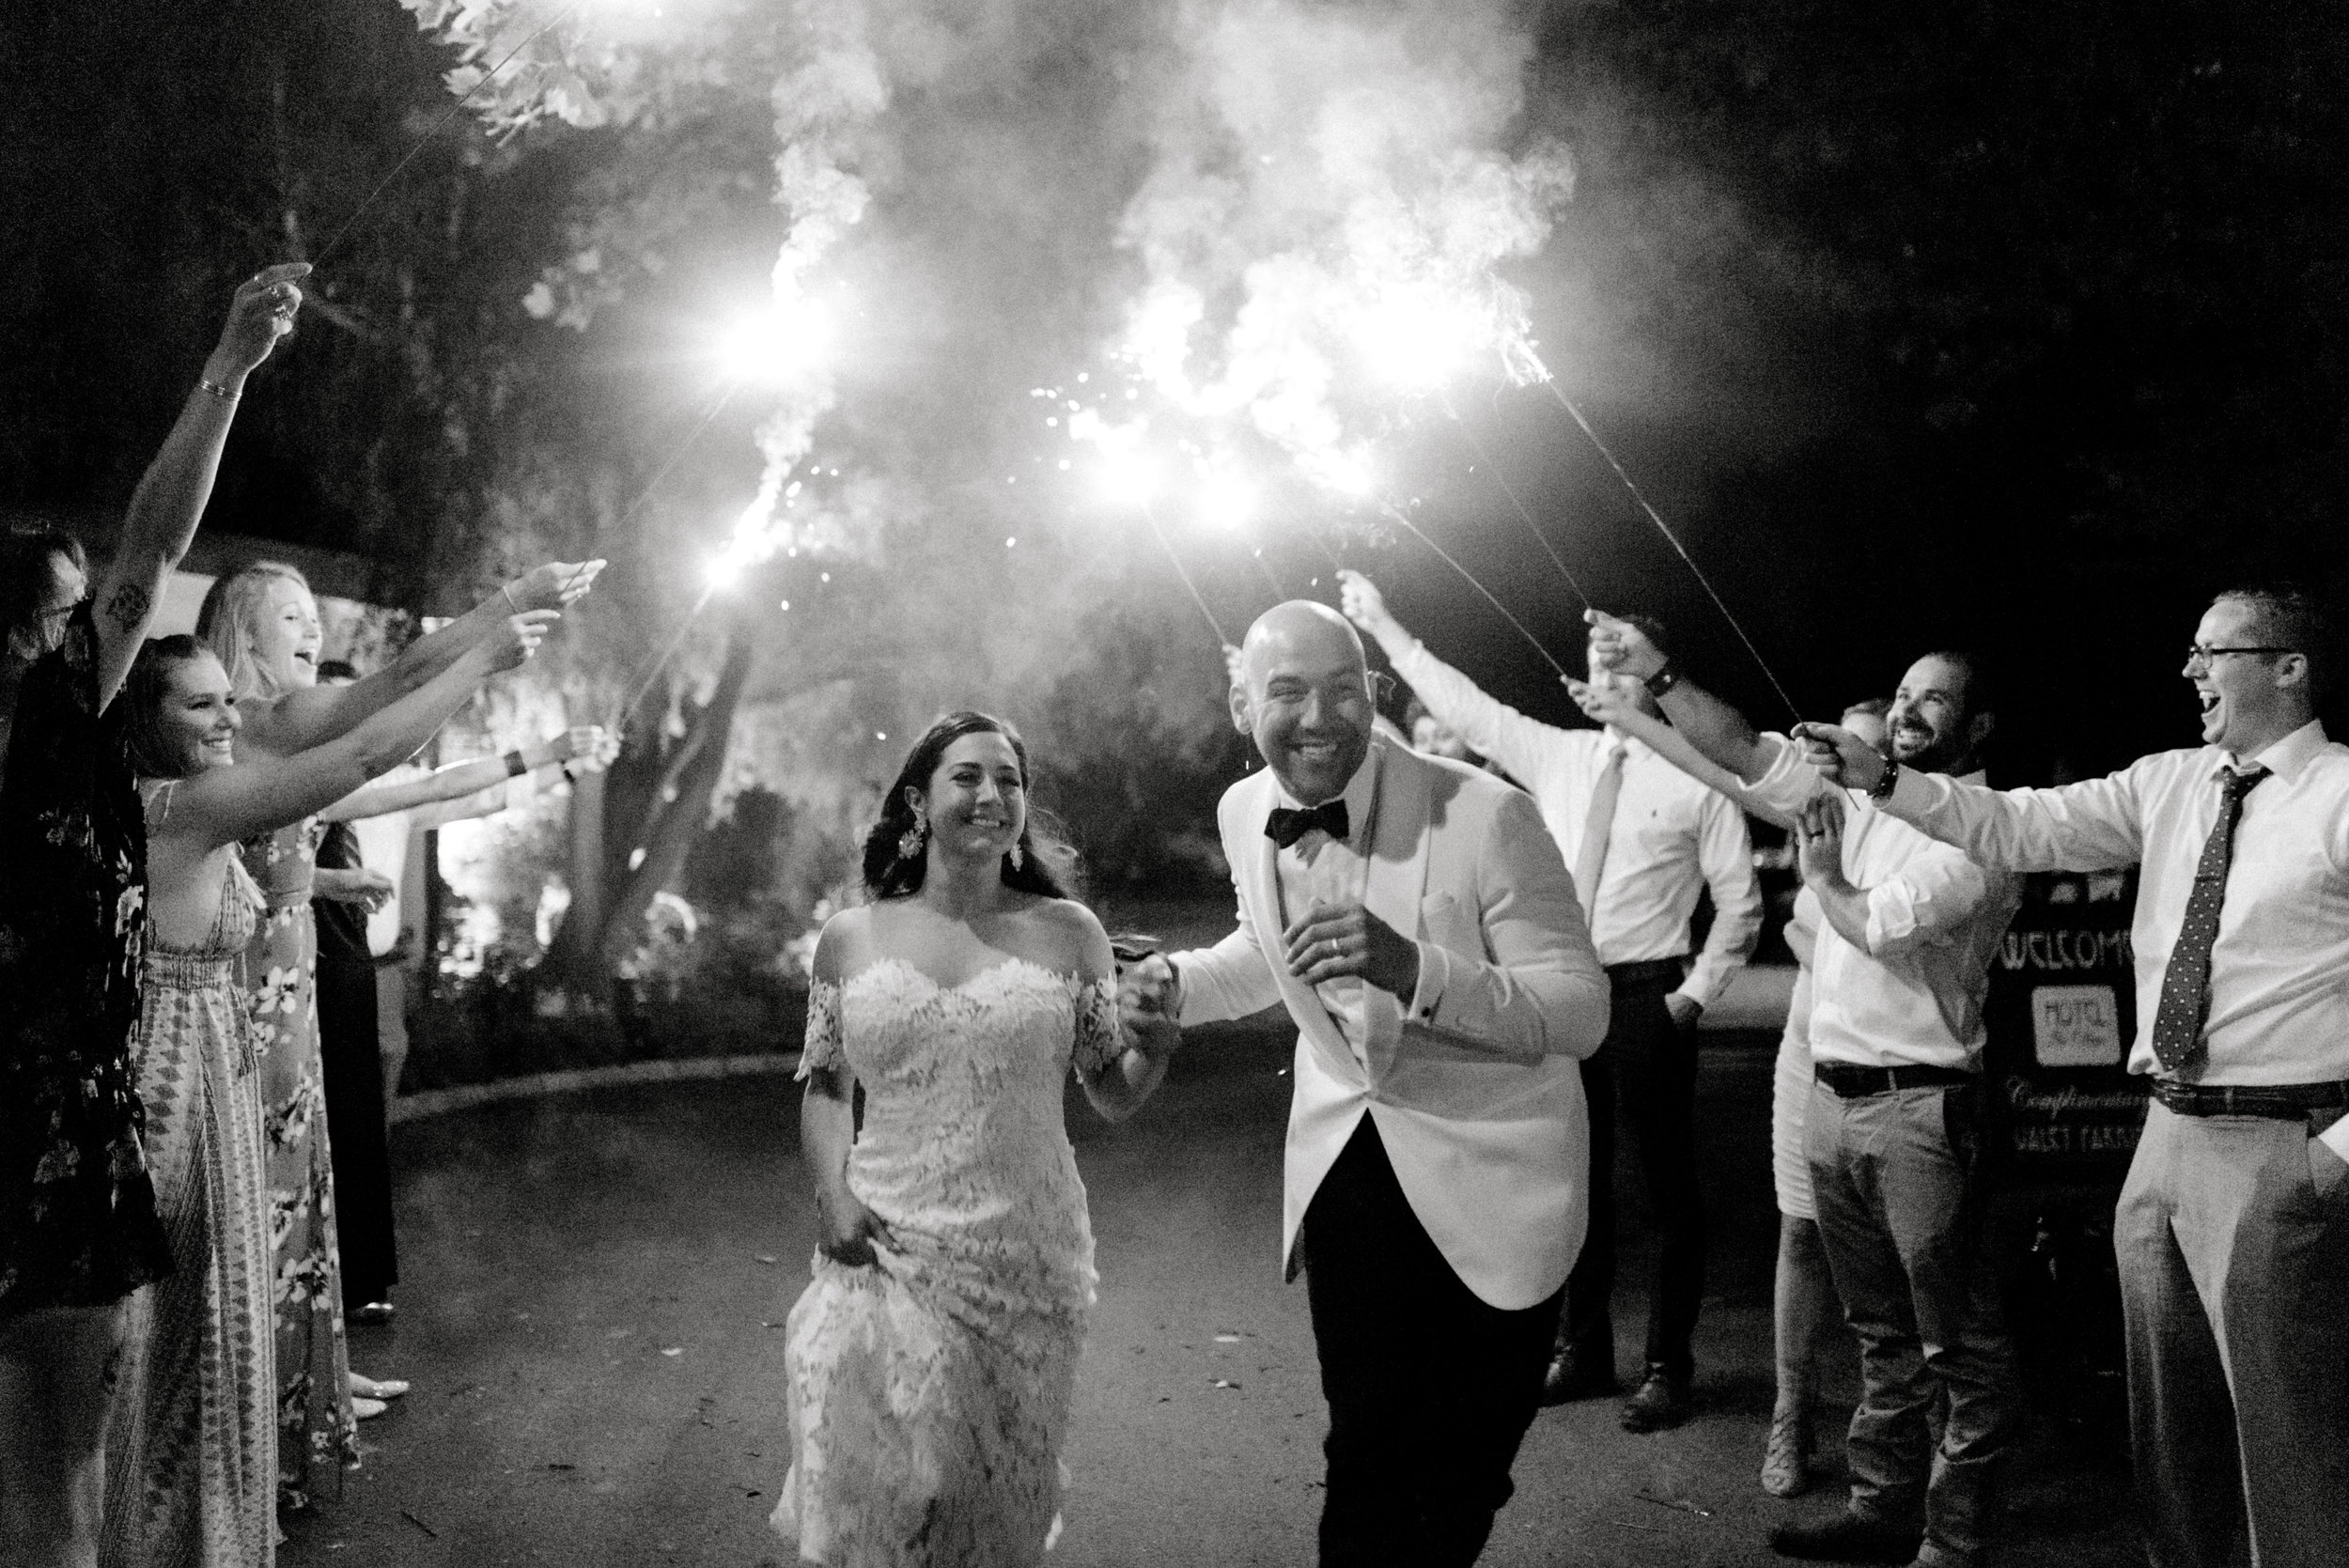 Happy as can be, Lindsey and James run through a line of sparklers to celebrate their amazing modern and bright summer wedding day at Hotel du Village.